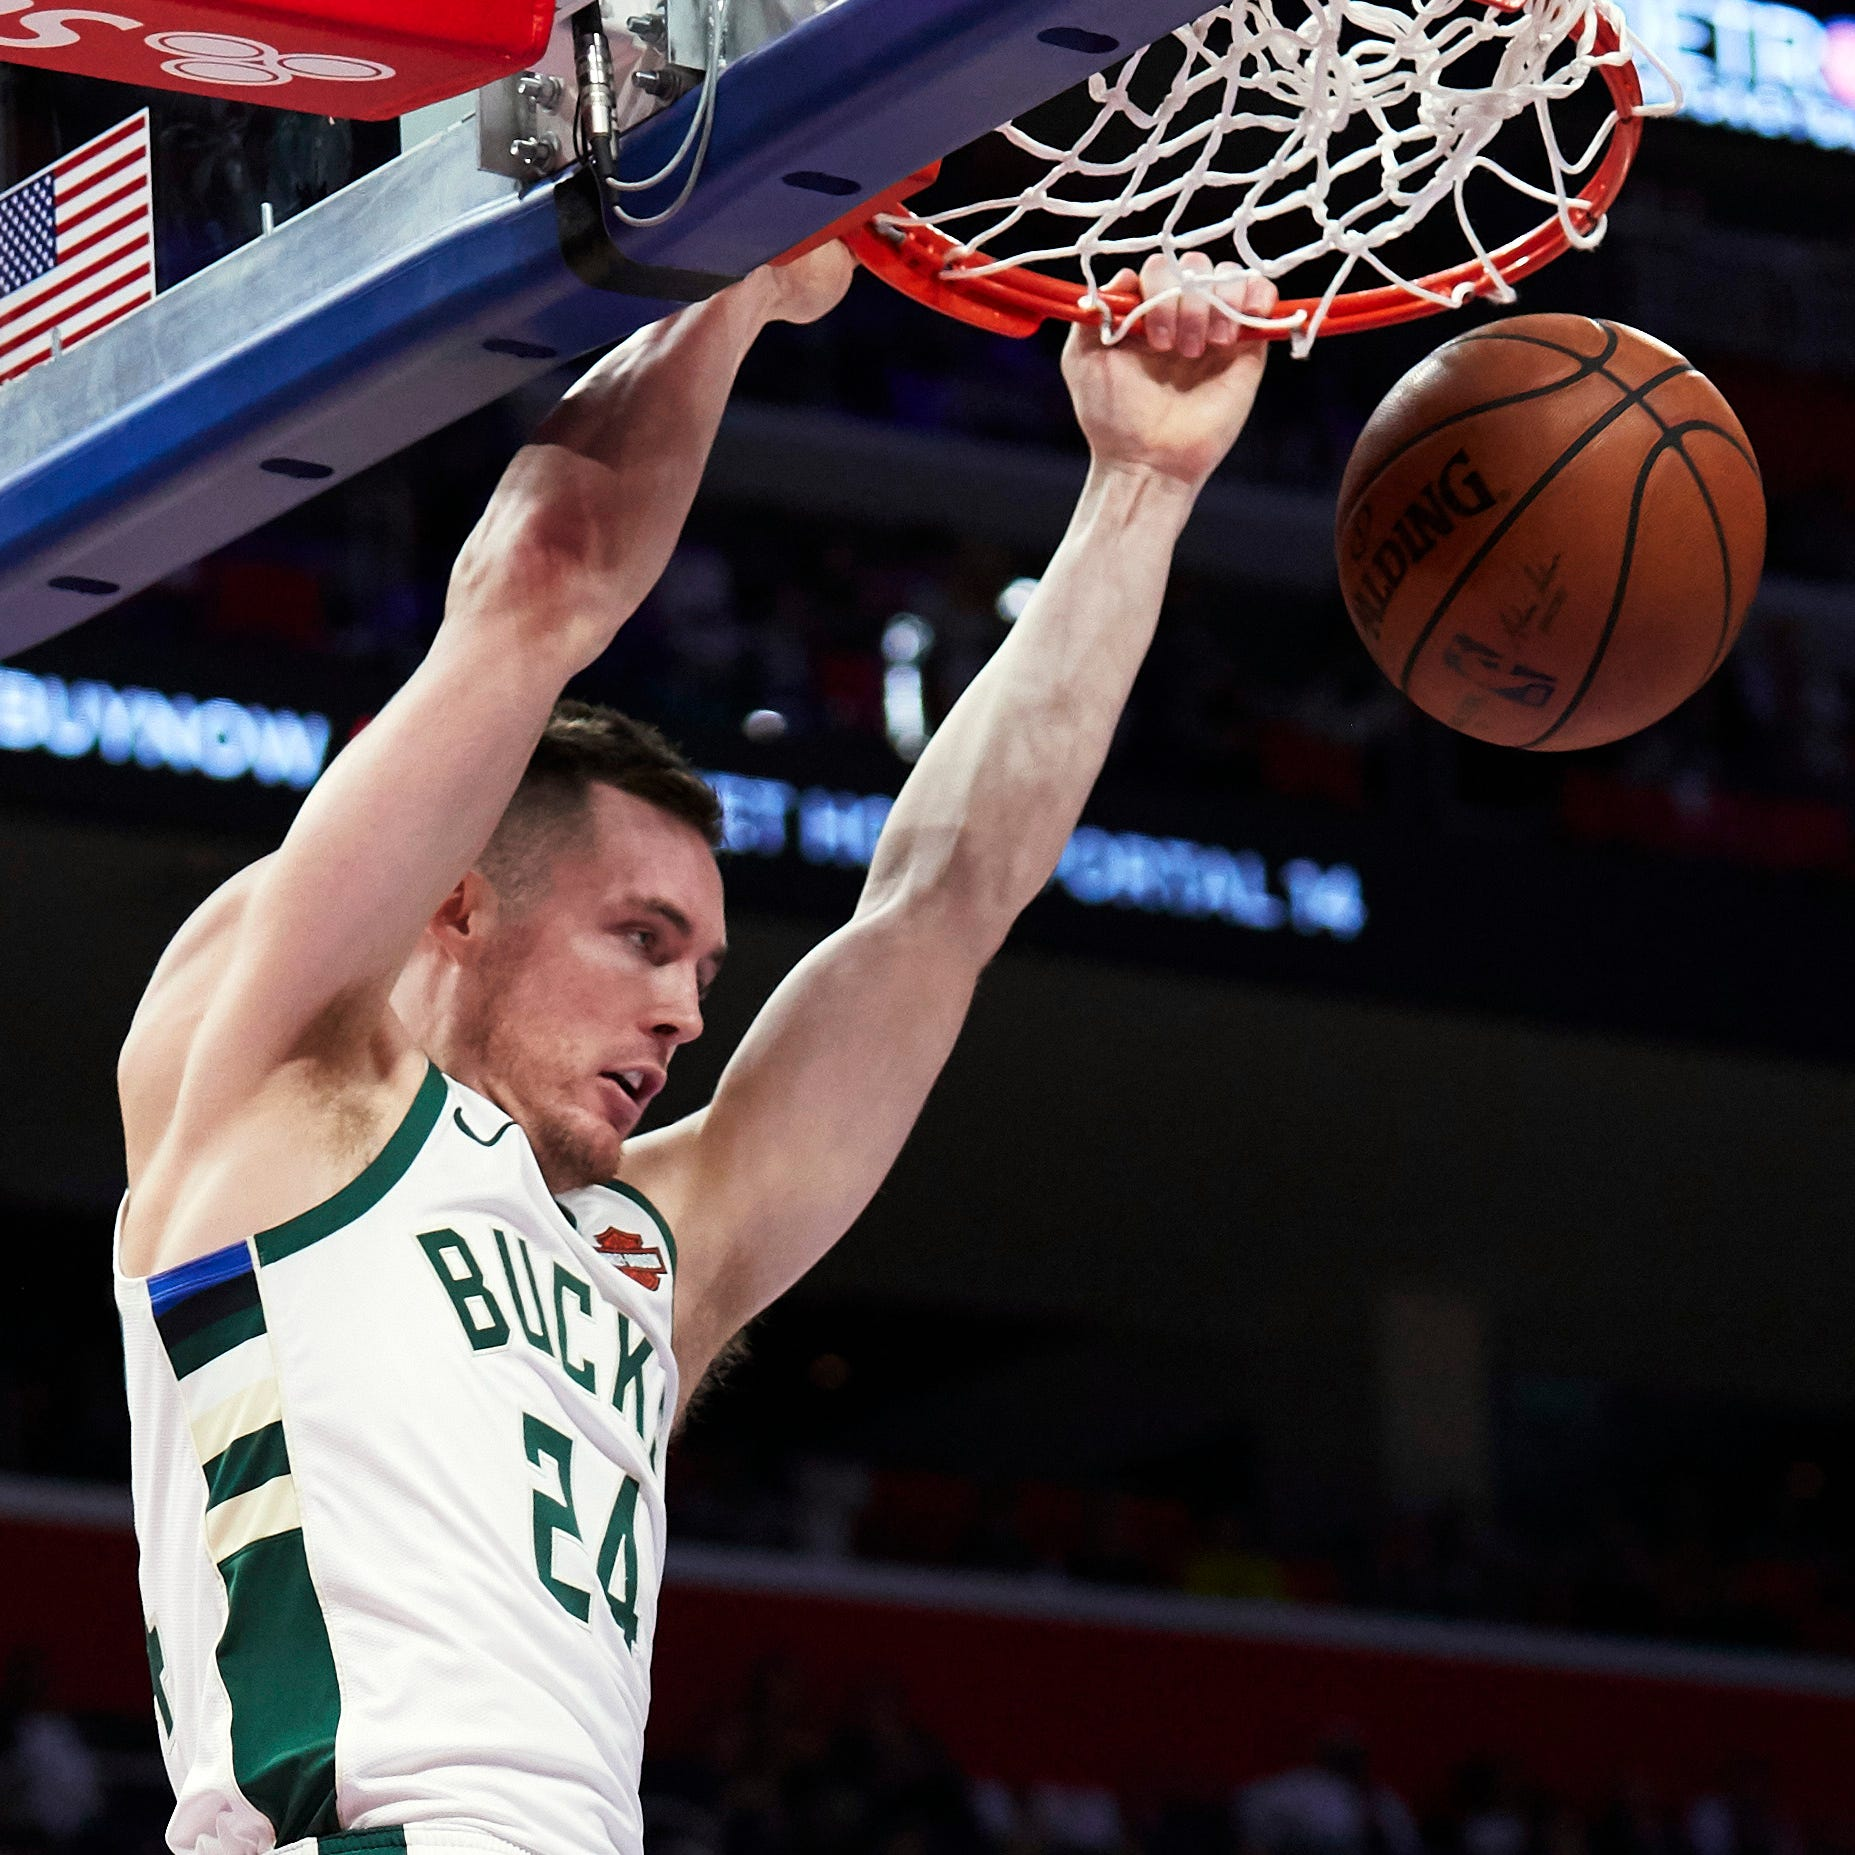 Nickel: Pat Connaughton's Irish roots run deep; Bucks guard also has affinity for Nikes